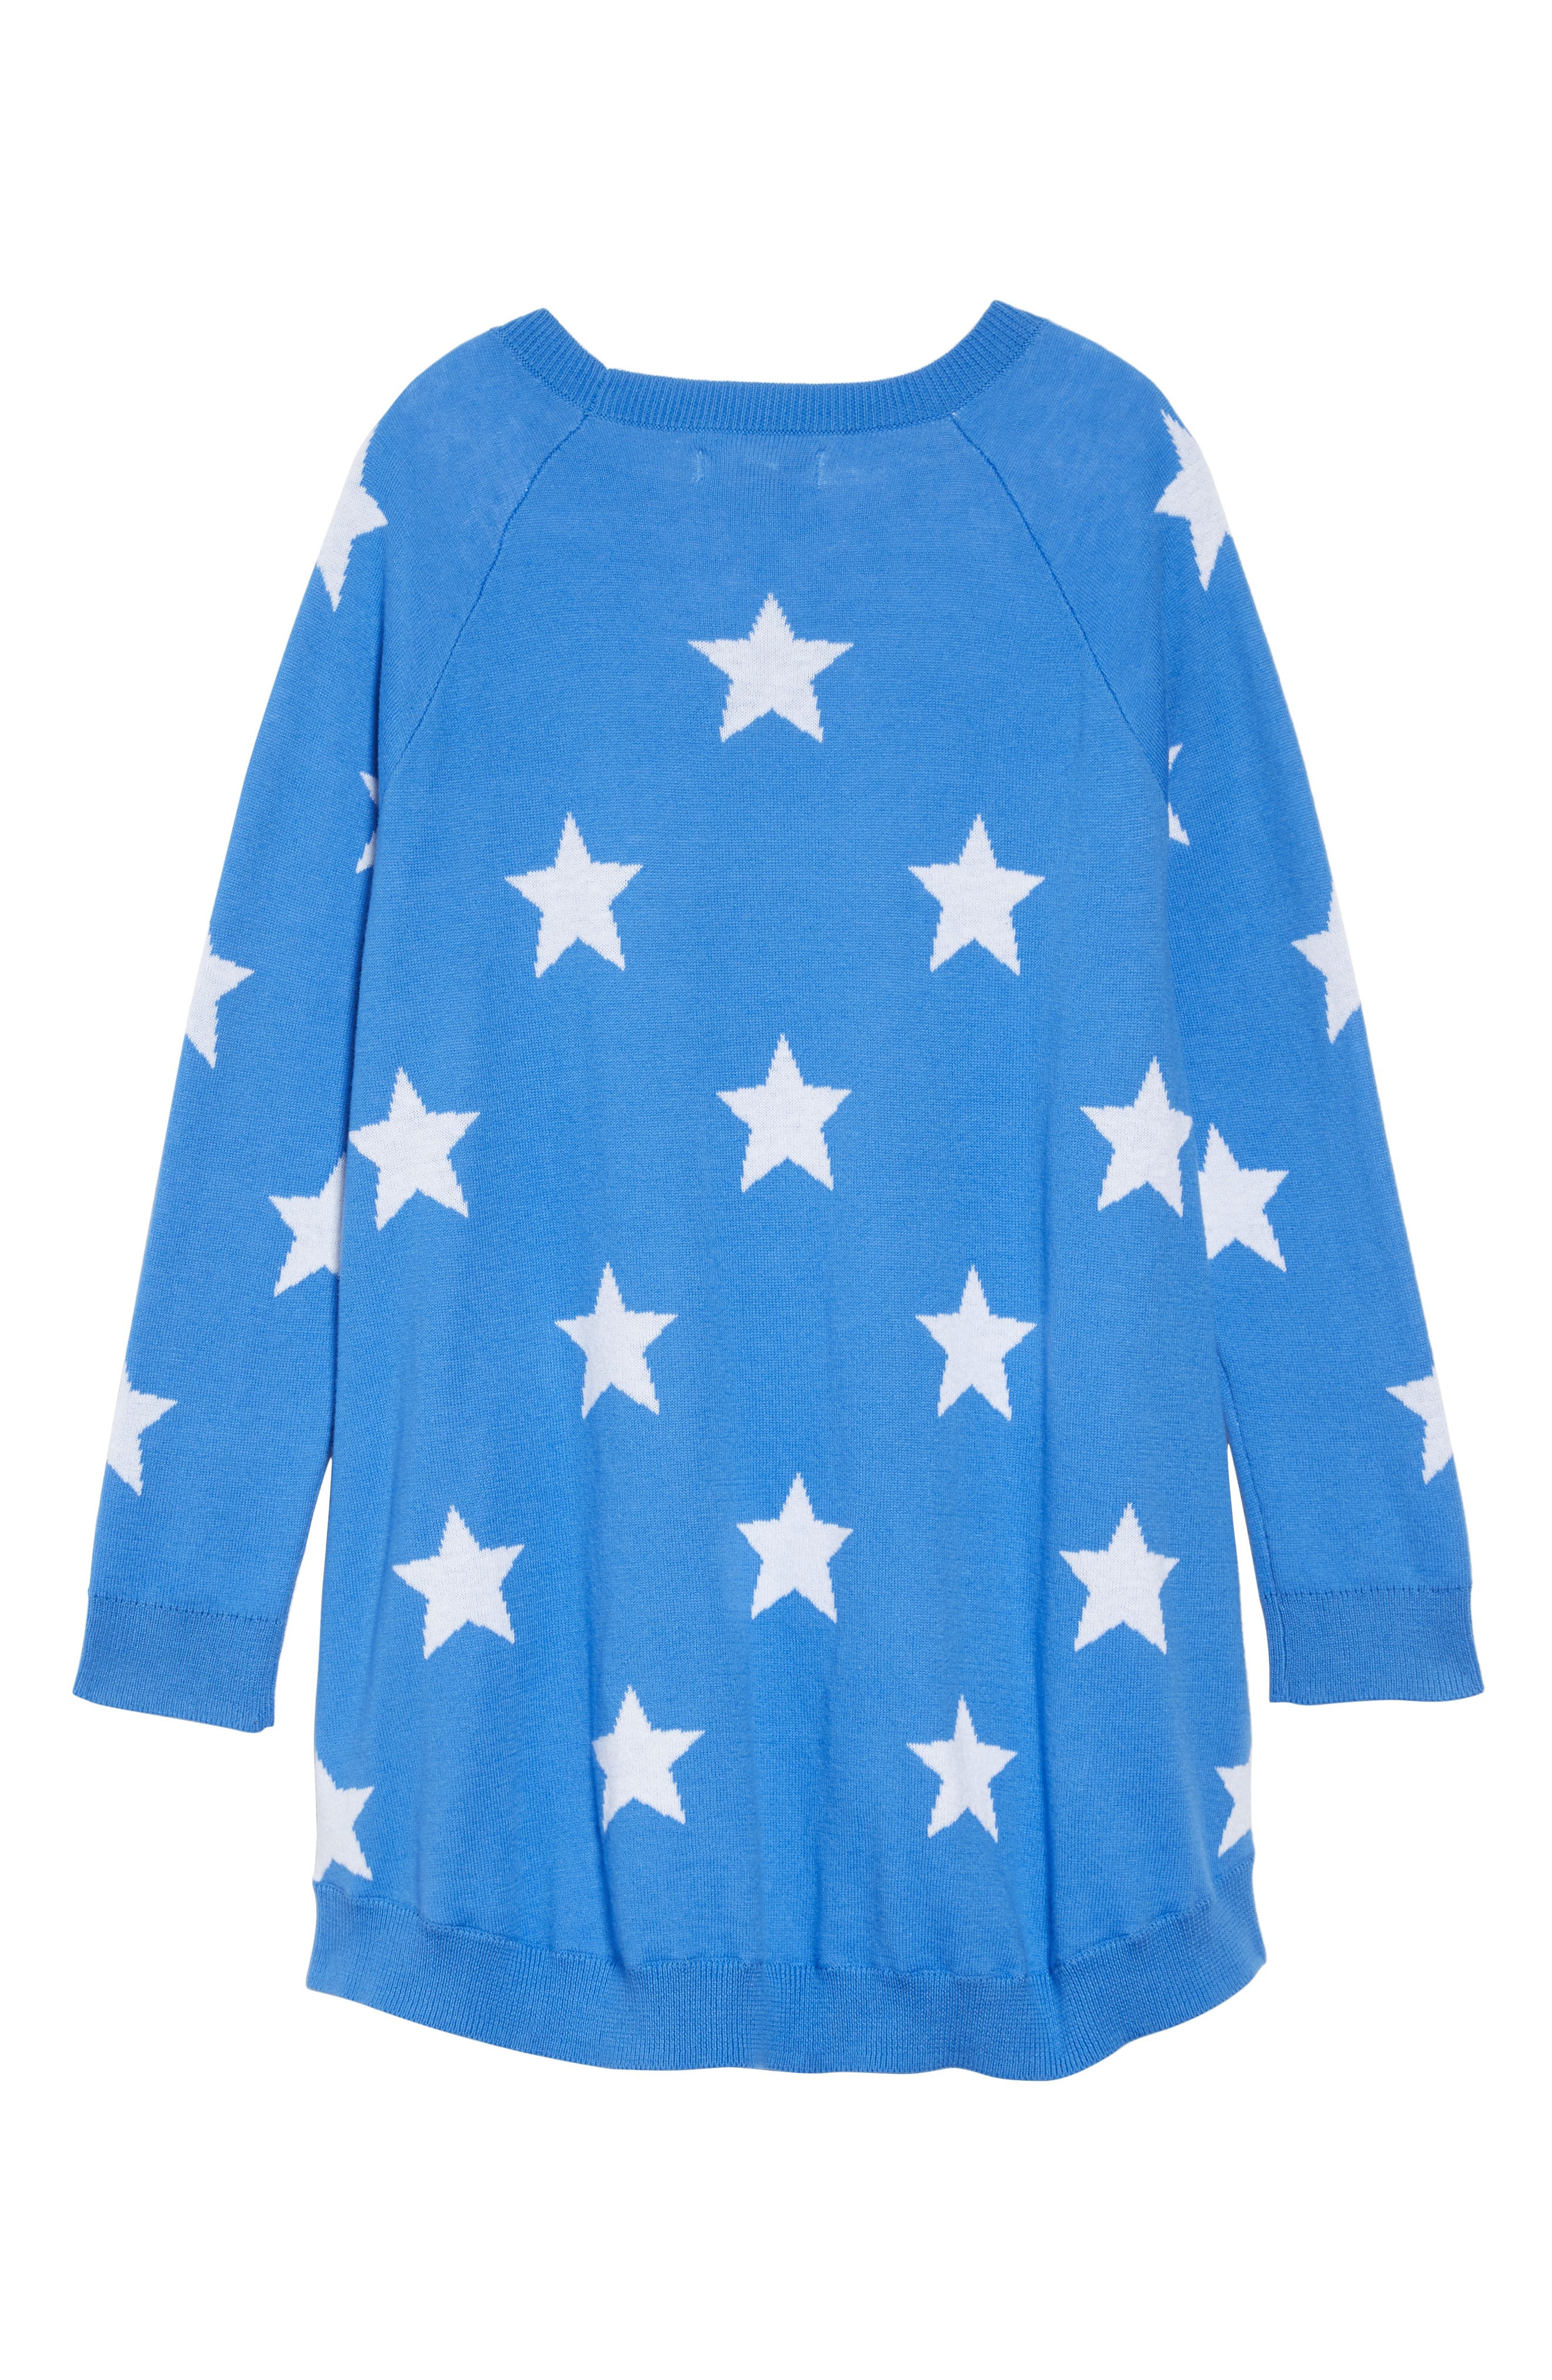 Swingy Sweater Dress,                             Alternate thumbnail 2, color,                             BLUE CAMP STARS